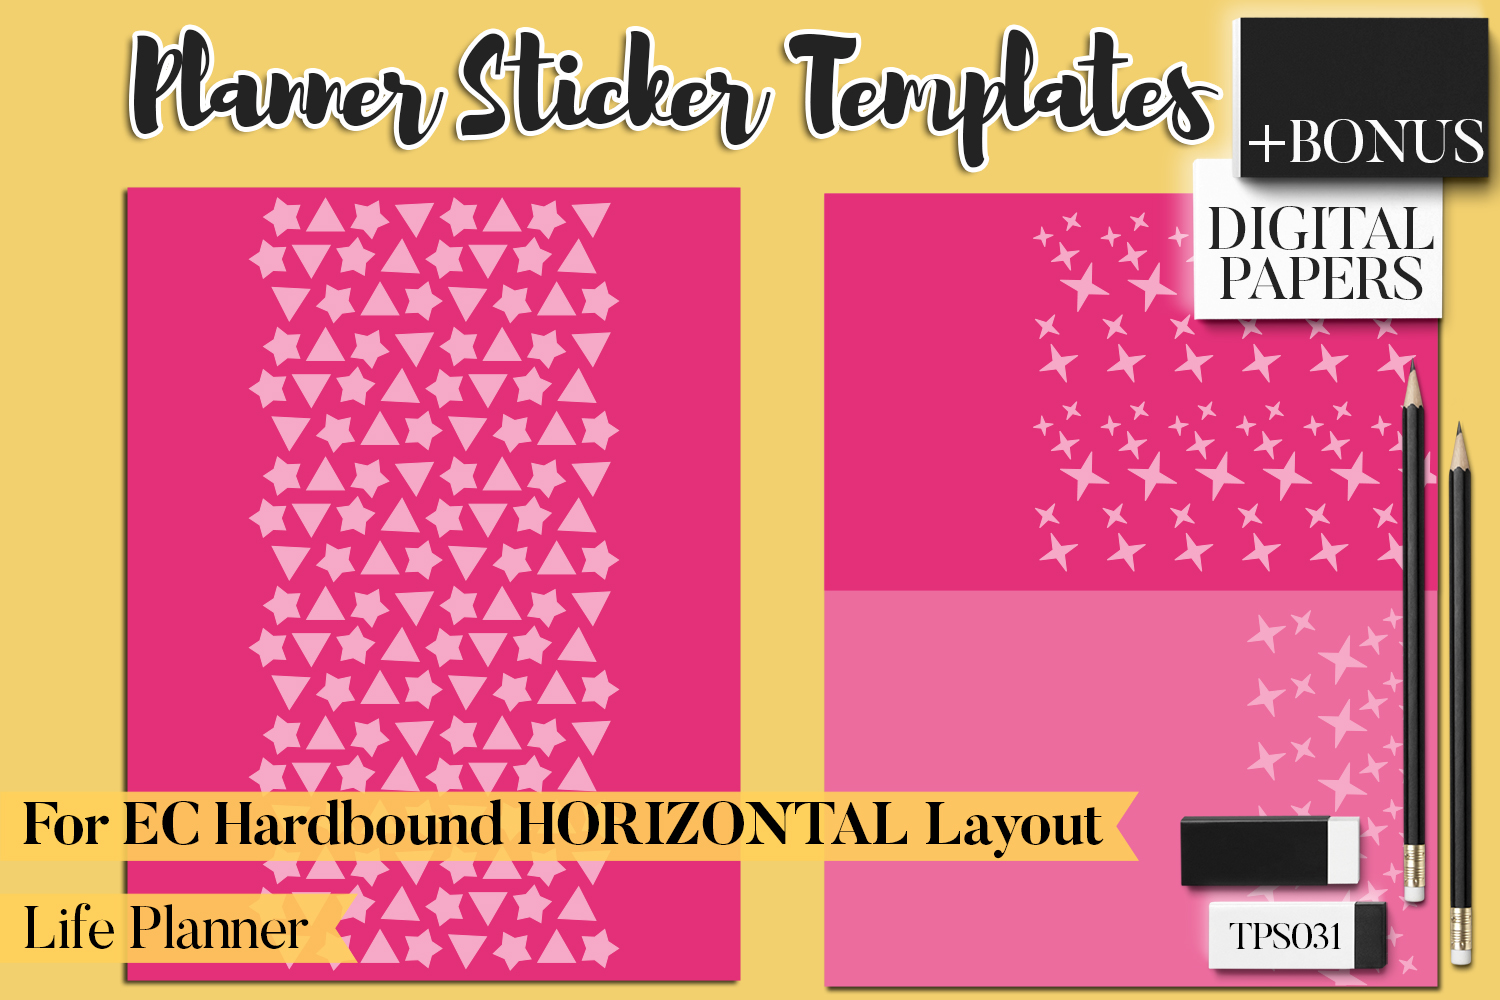 Planner Stickers Templates - Bundle Vol. 11 example image 7